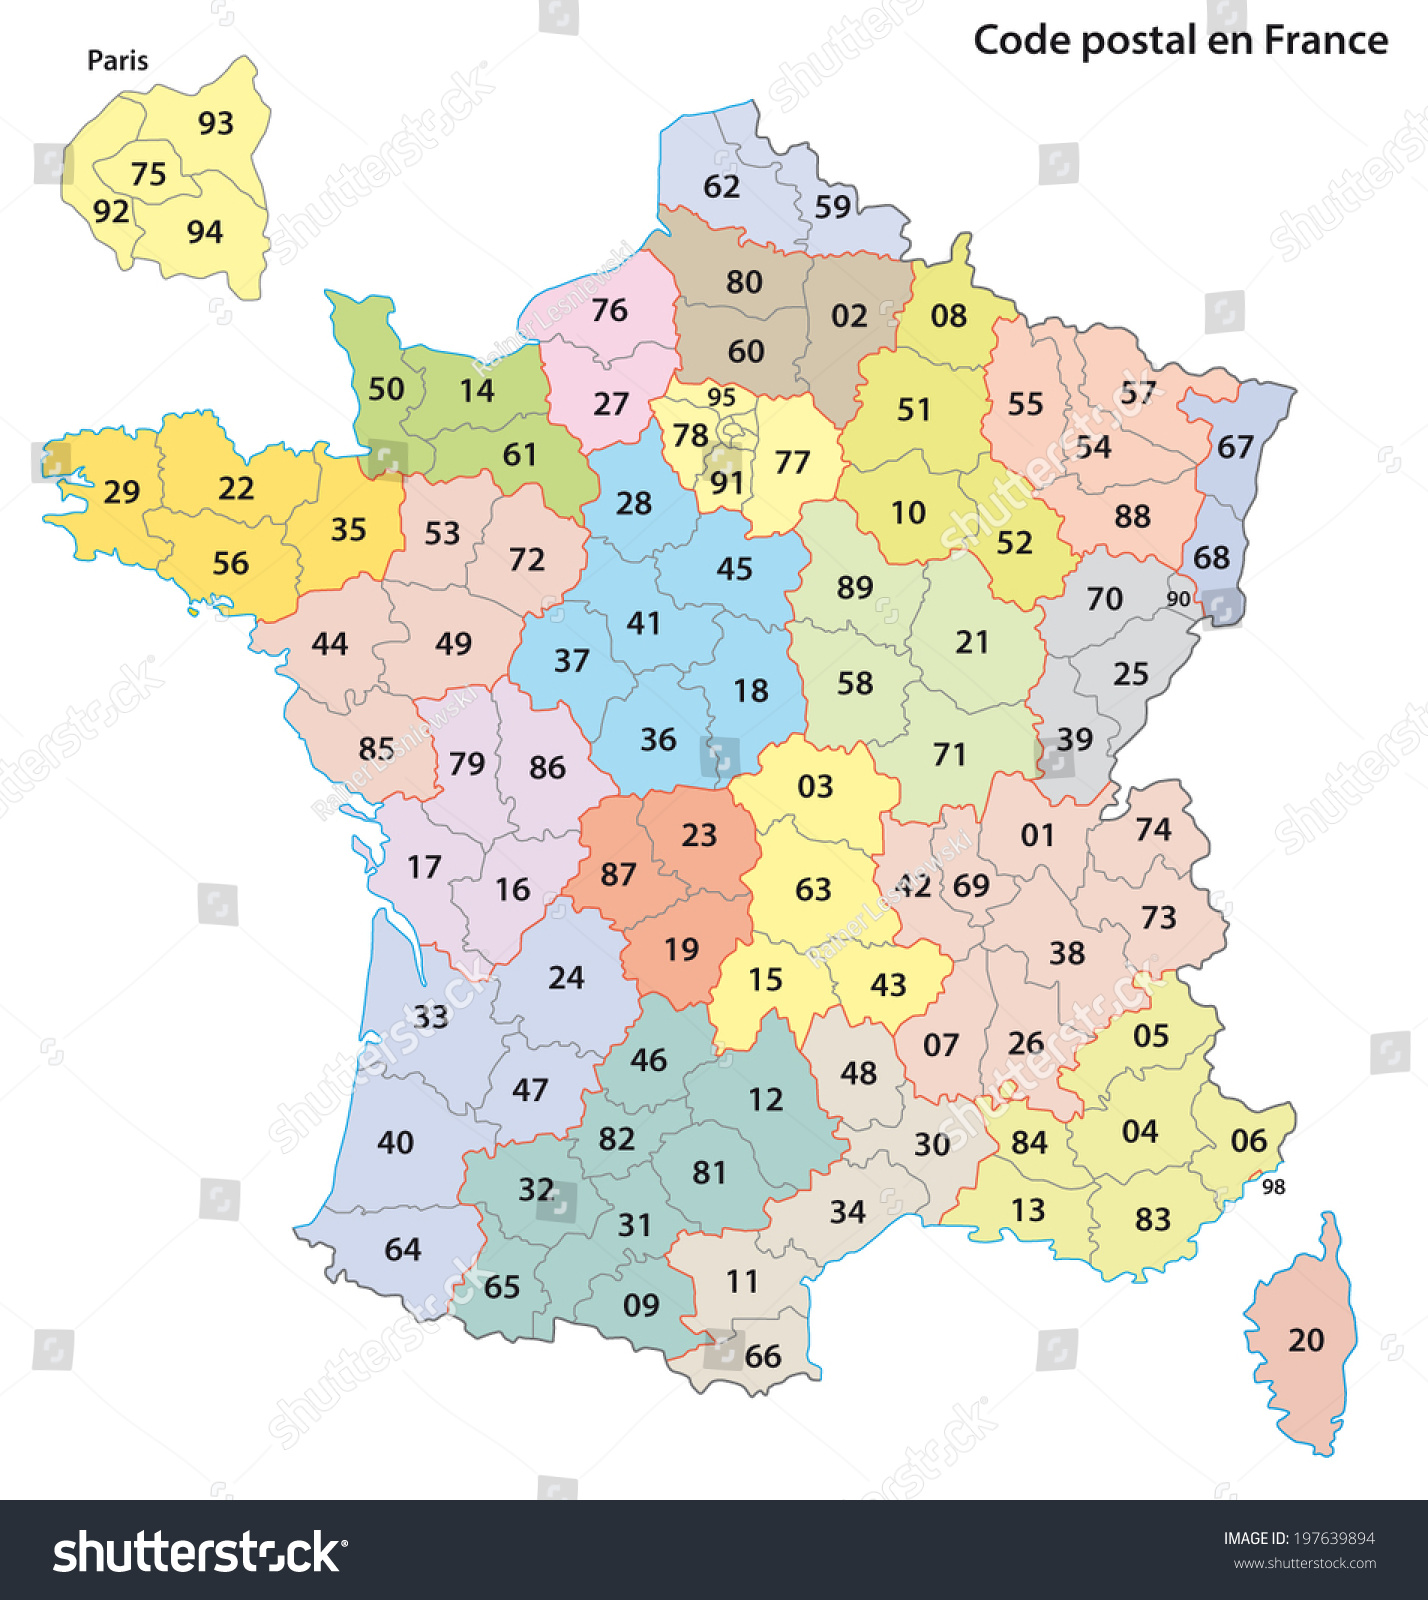 France 2digit Postcodes Map Stock Vector 197639894 - Shutterstock